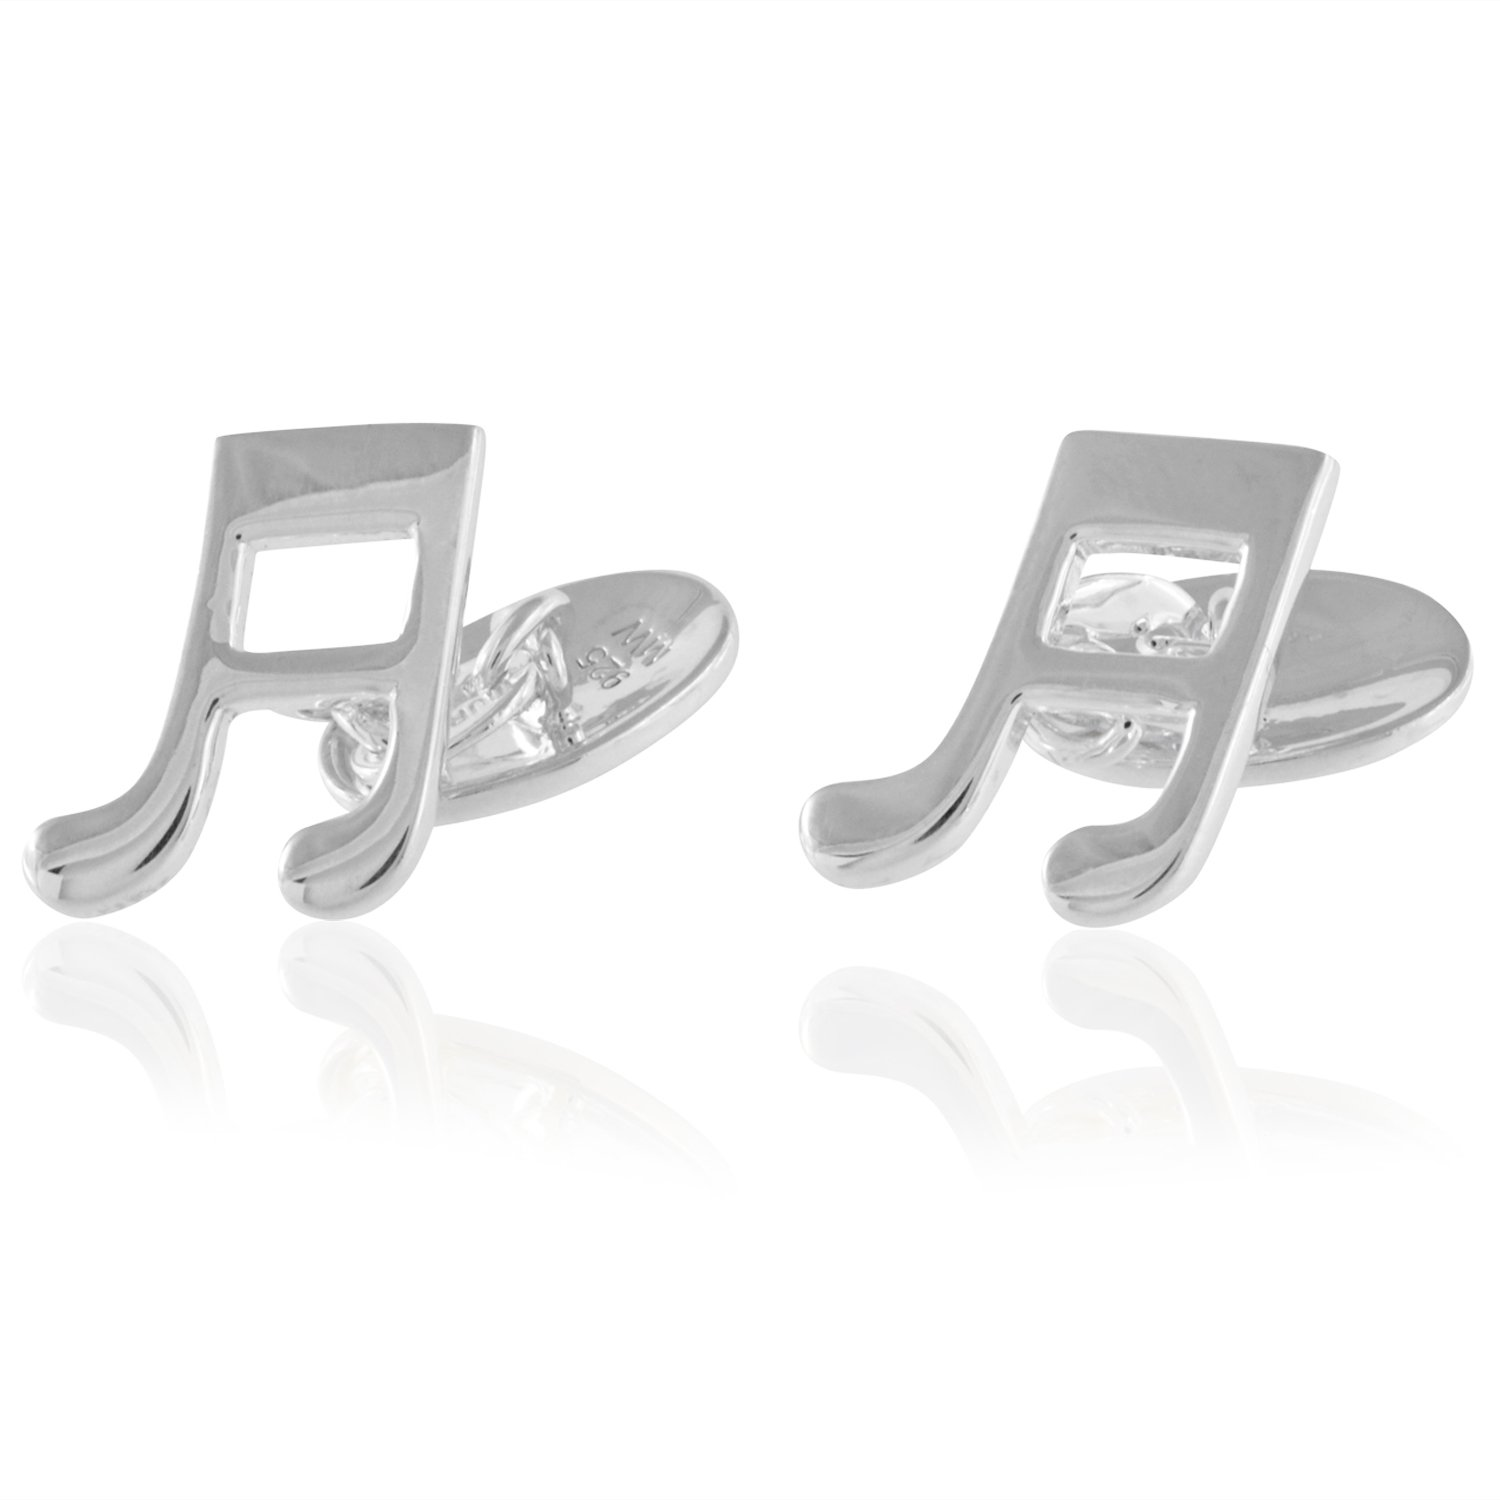 Music Note Cufflinks Vintage glass cufflinks Let the Music Flow Collection